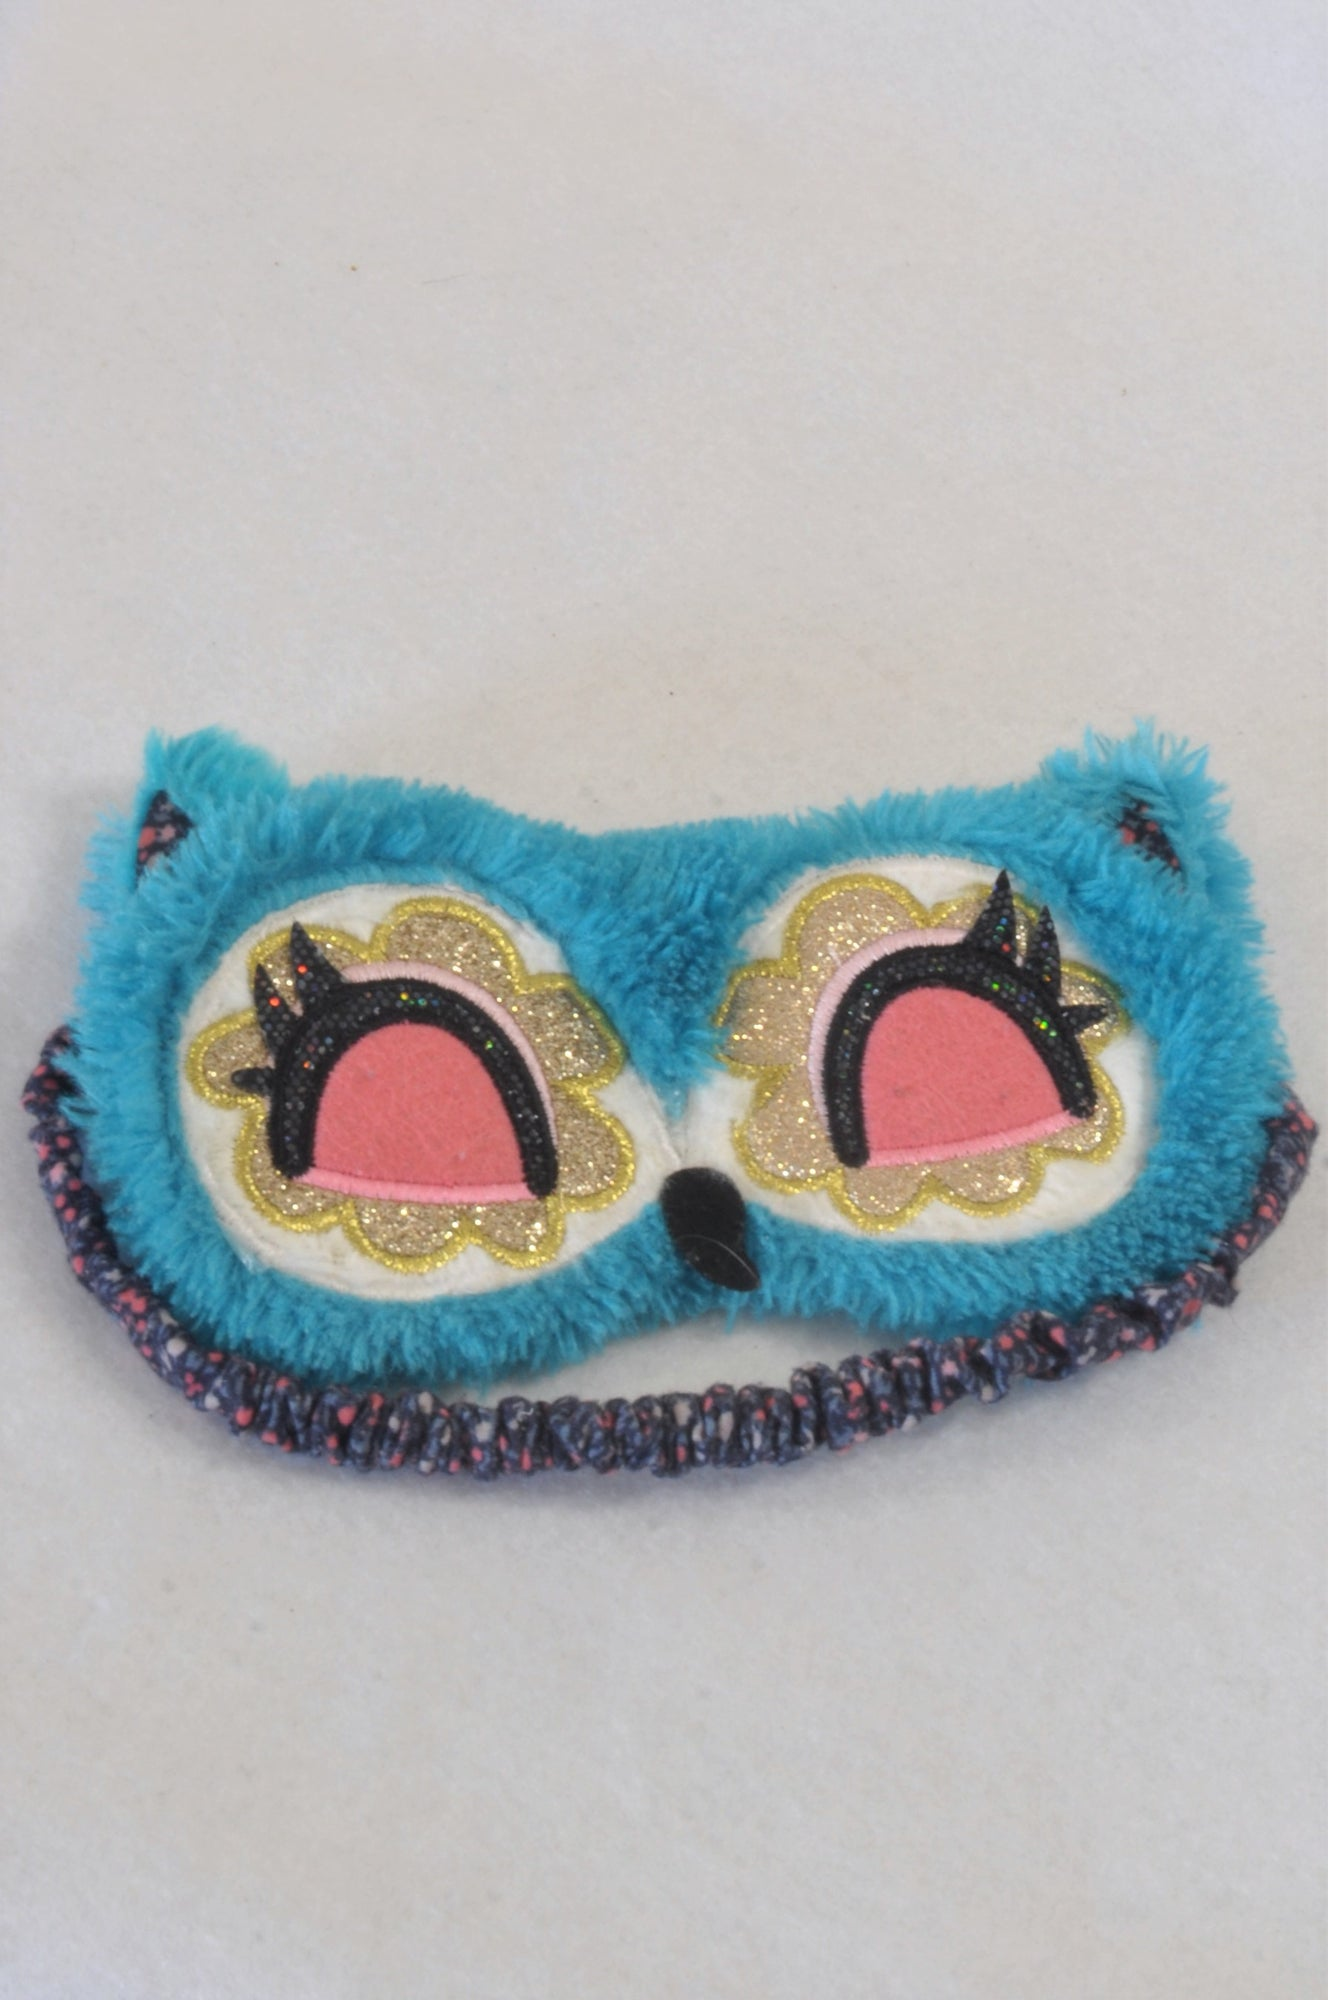 Claire's Blue Owl Eye Mask Accessory Girls 4-10 years